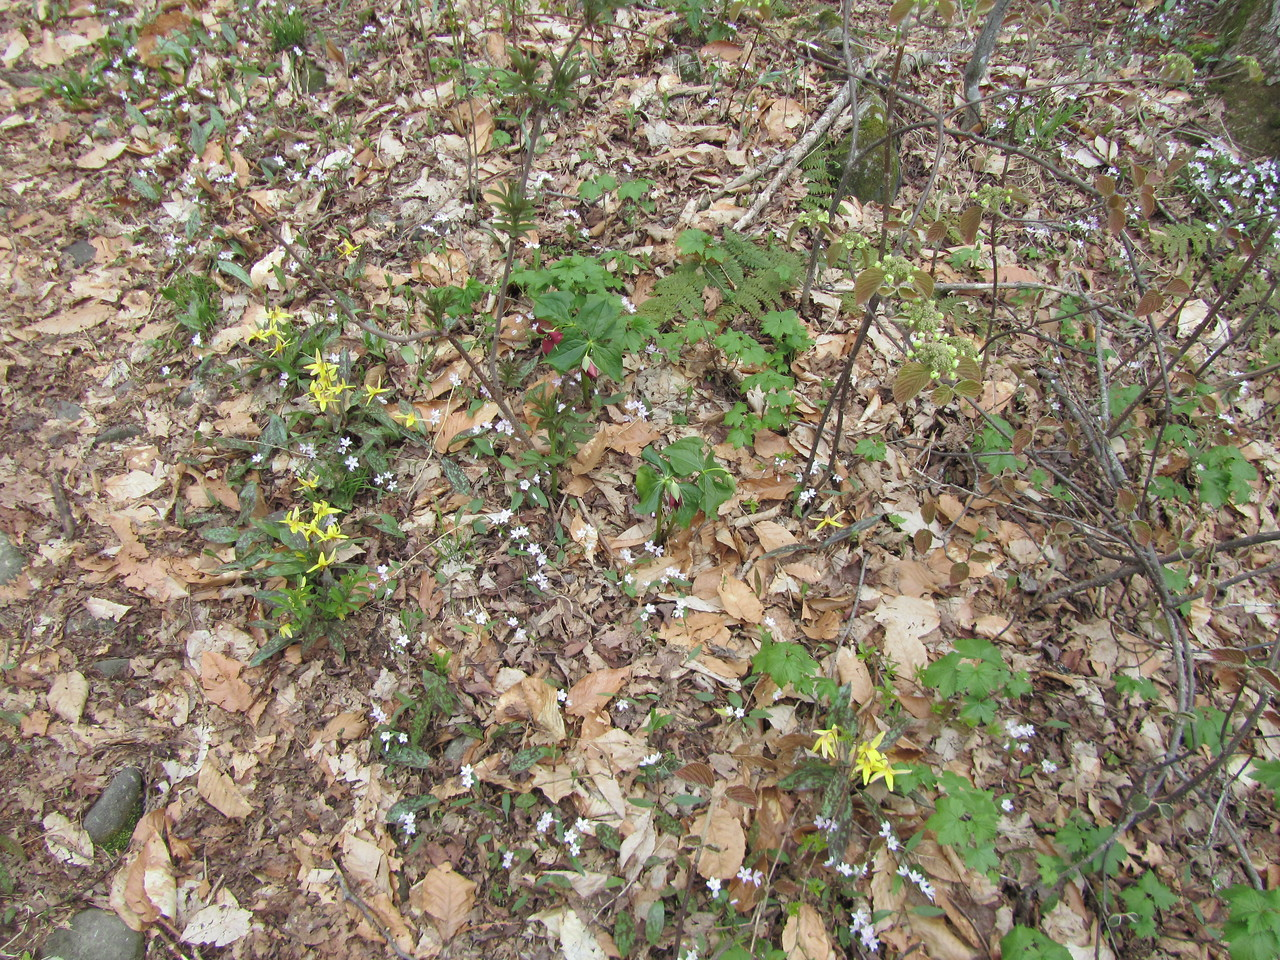 Trout lillies, purple trillium, white violets, ramps, fiddleheads and a yellow flowering shrub.